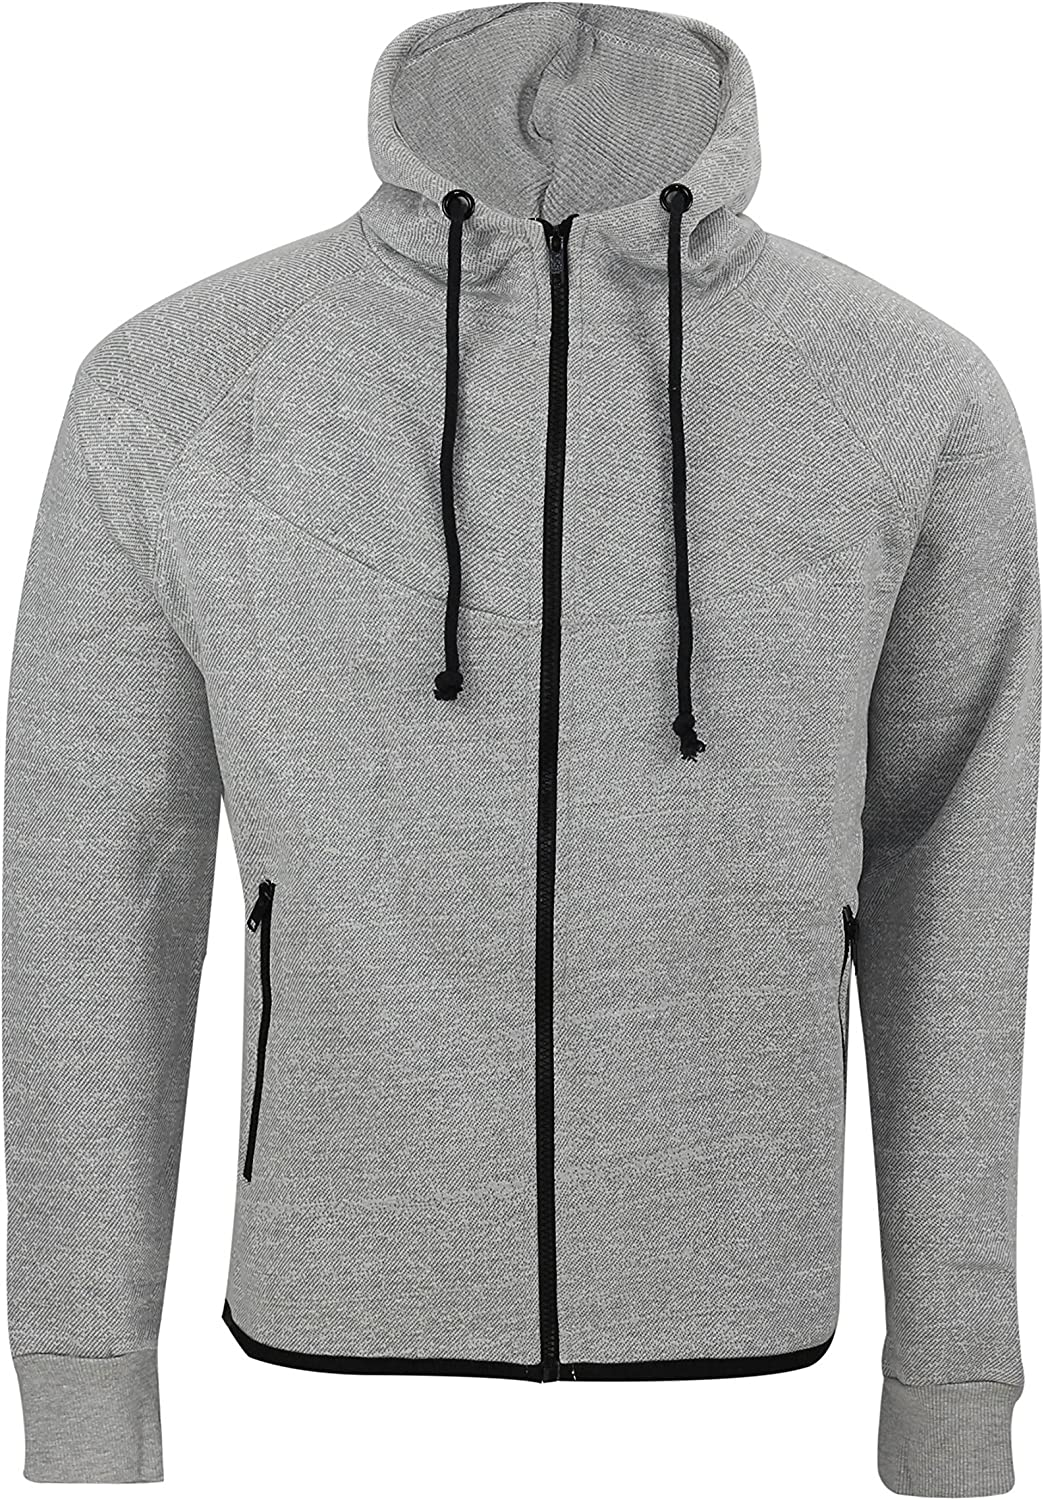 Jack /& Danny/'s Clothing Full Zip Hooded Tracksuit Drawstring Active Sportswear